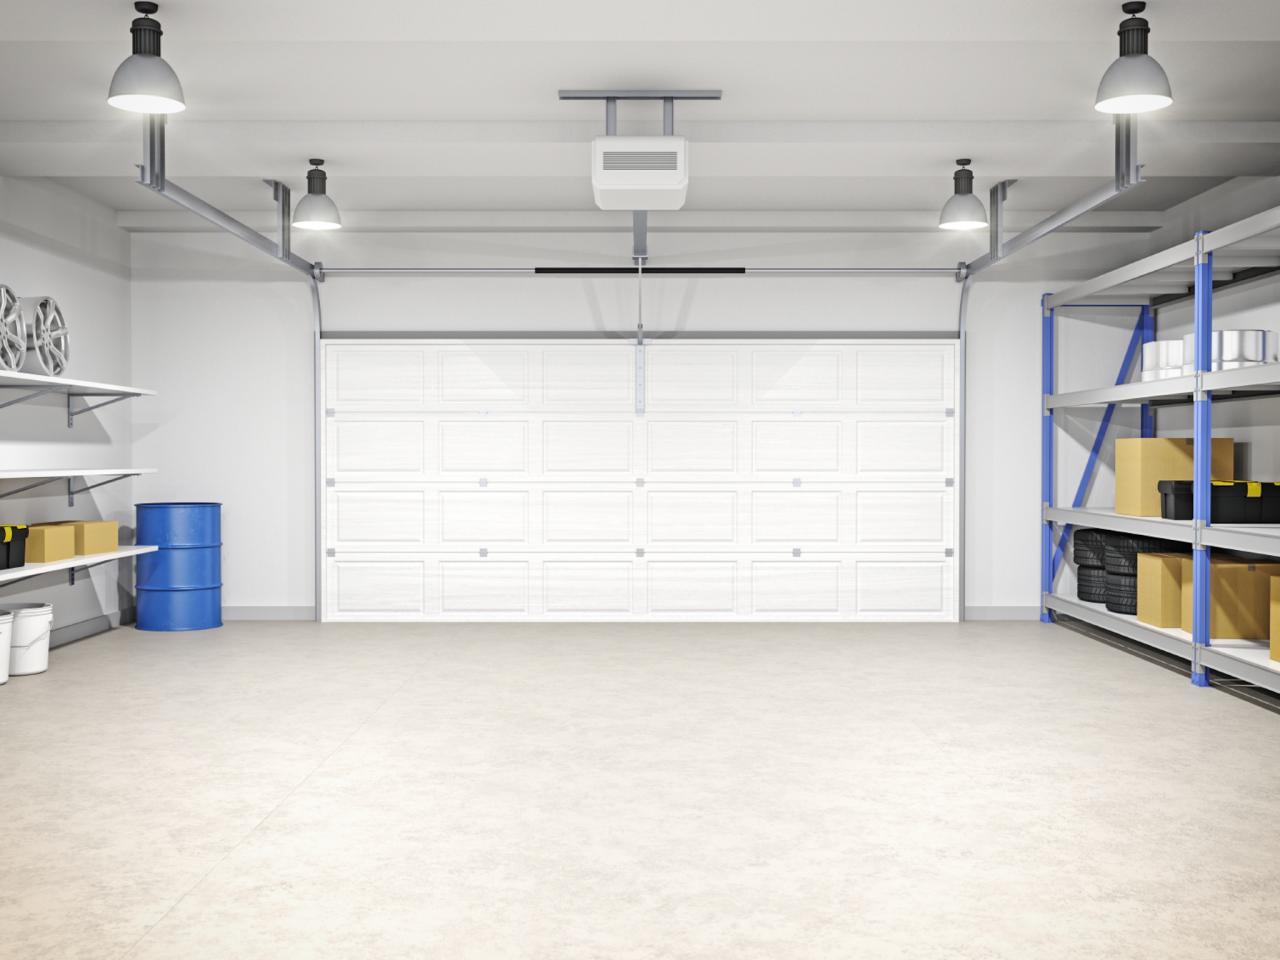 Best Garage Flooring Options  Diy. Front Door Retailers. Install Door. Garage Floor Parking Mat. Garage Door Services Austin. Closet Door Handle. Clopay Garage Door. Garage Conversion Los Angeles. Chi Garage Doors Reviews